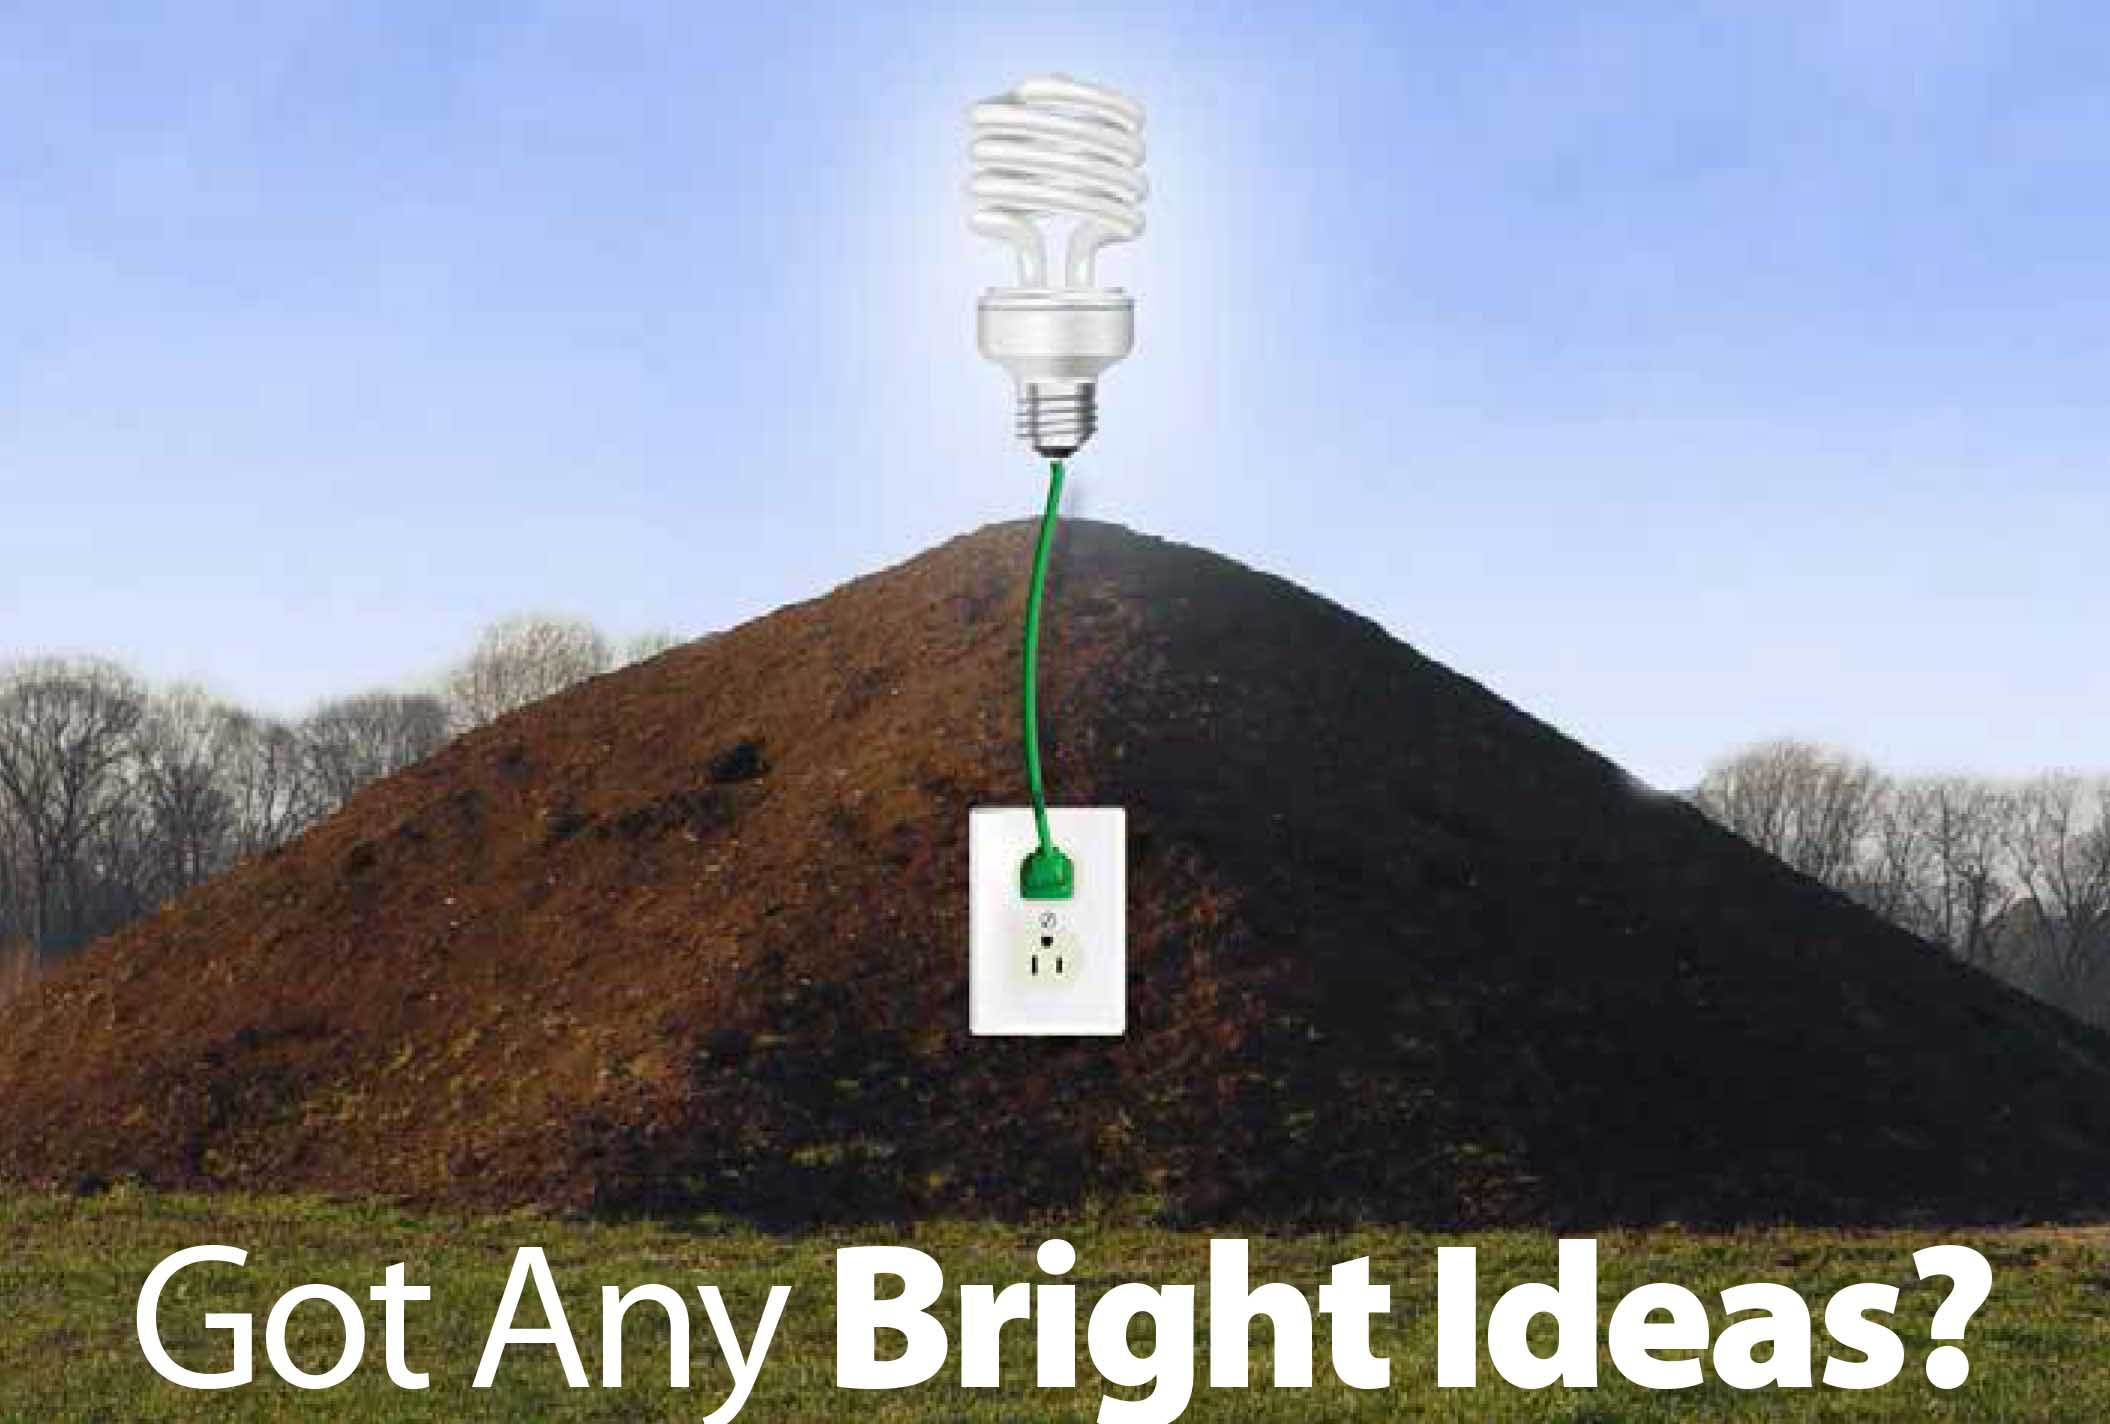 pile of manure with lightbulb